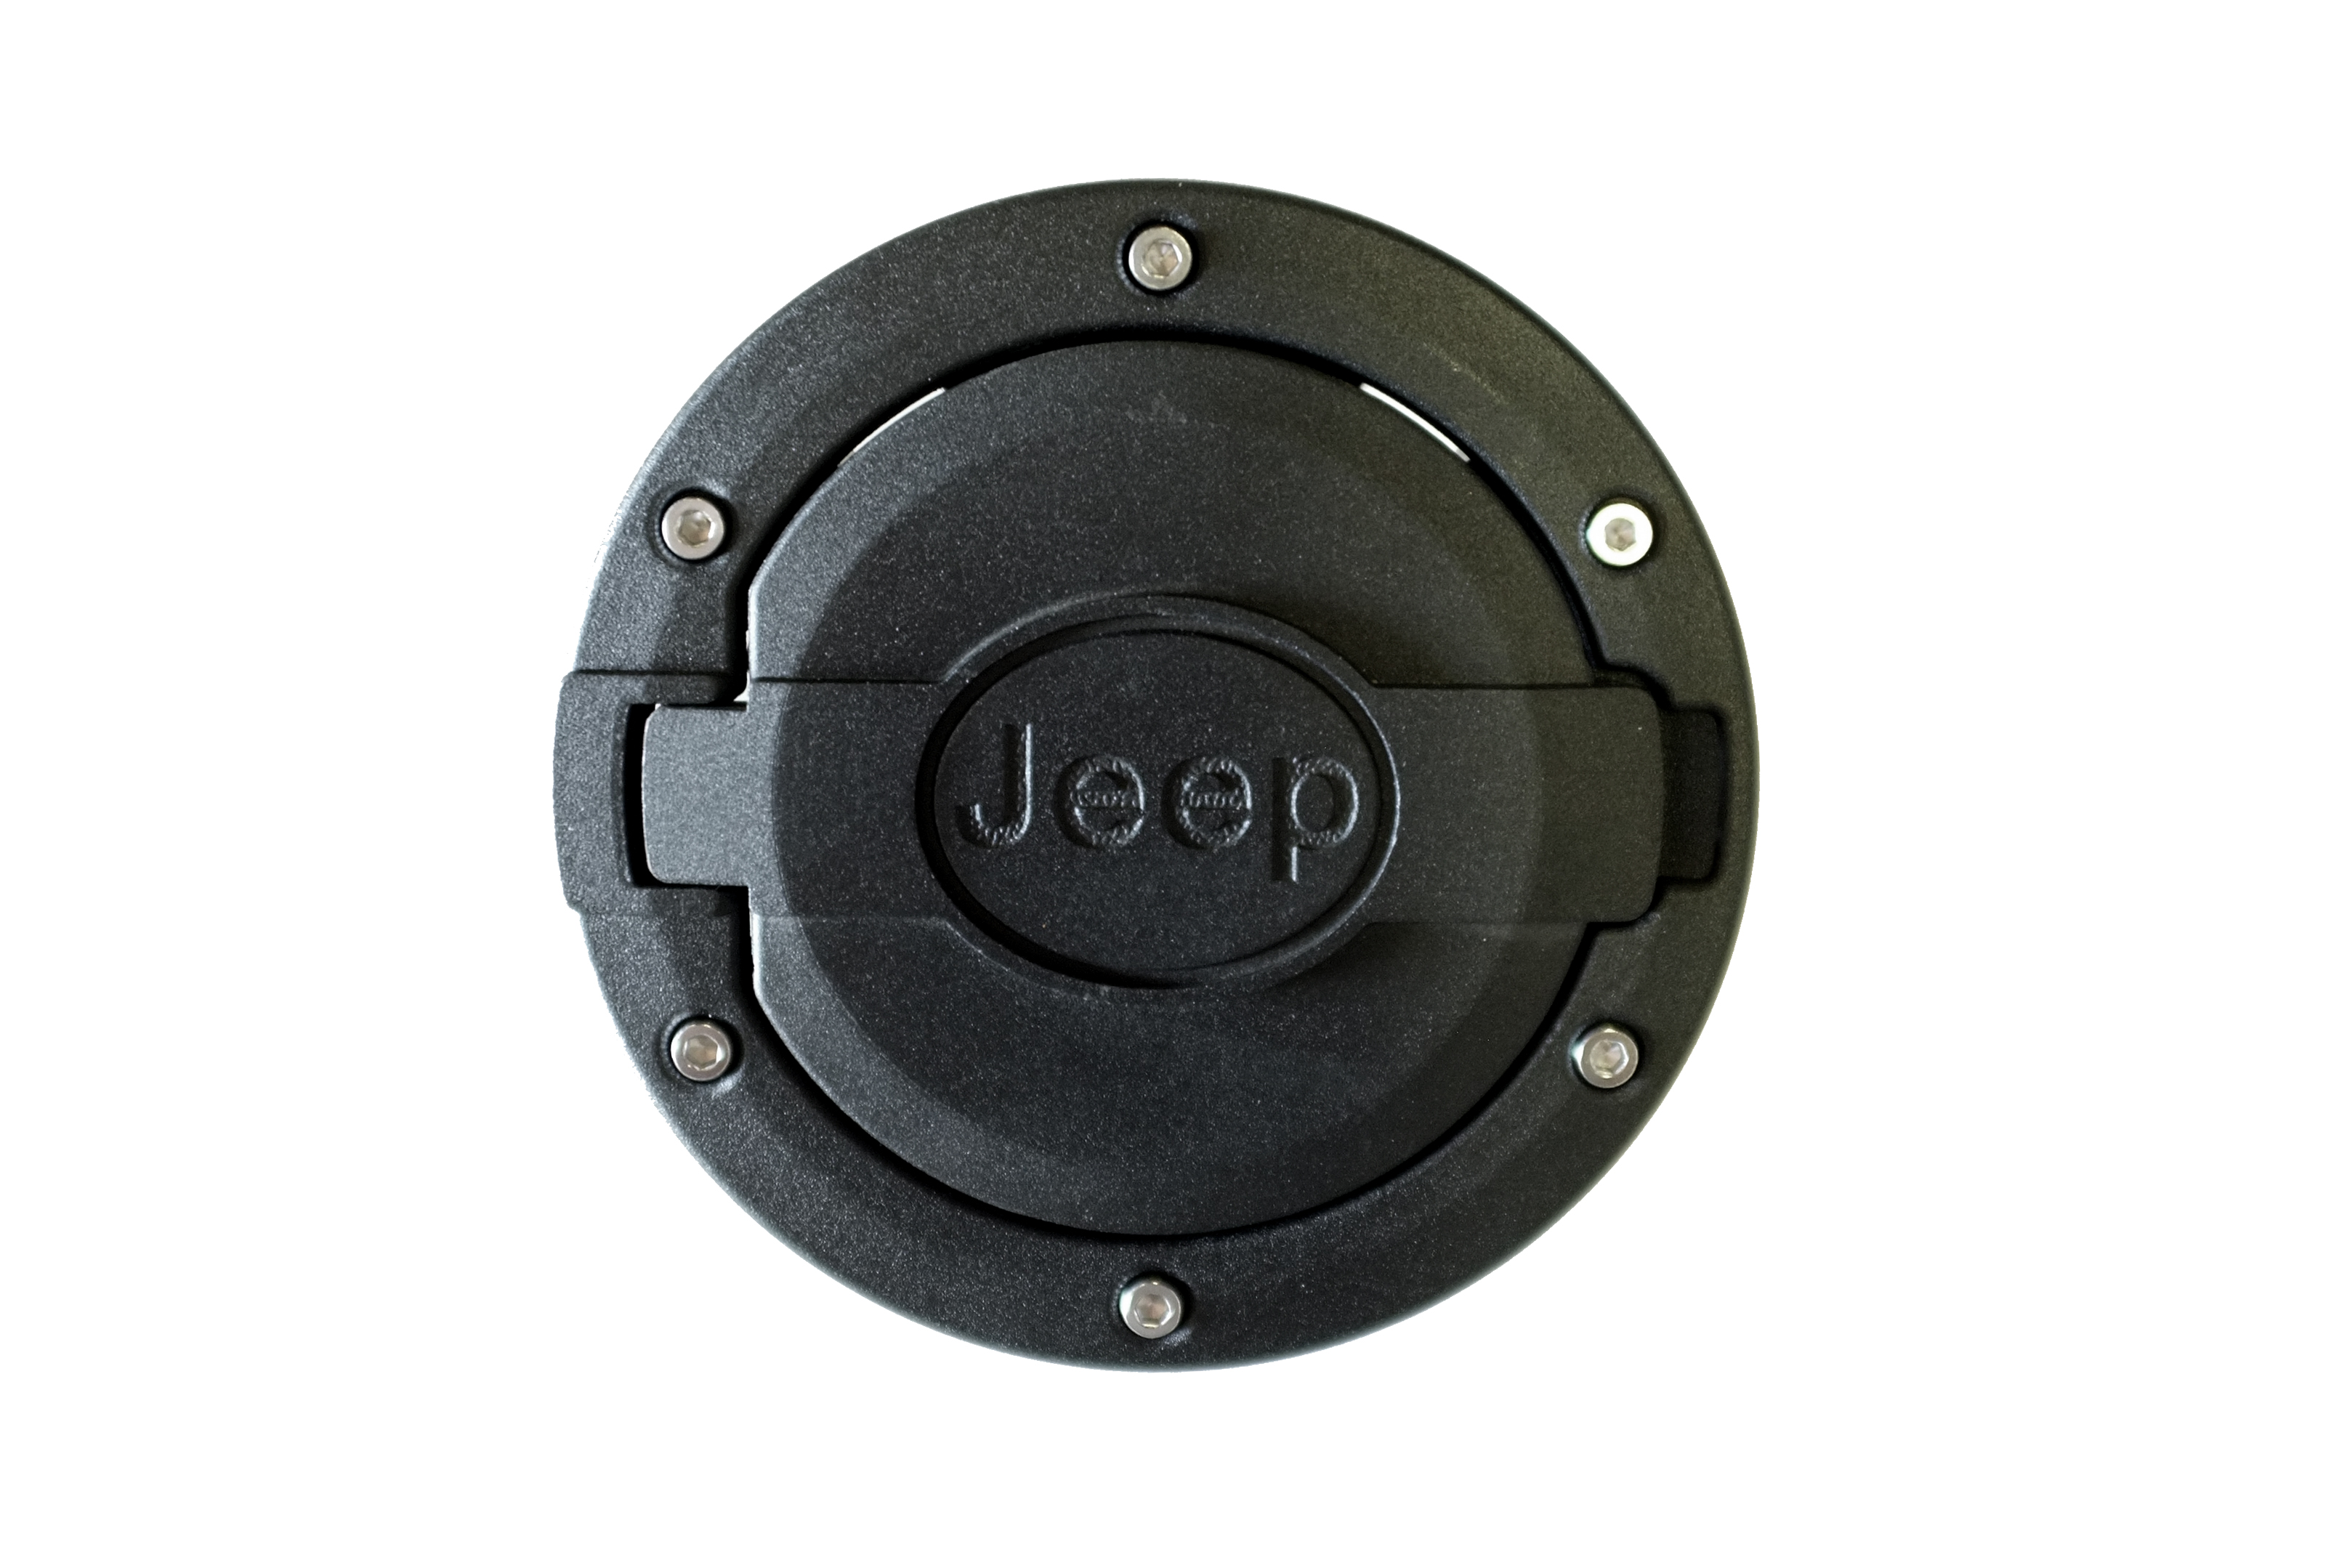 Trappe réservoir Jeep JK finition Noir nouvelle version